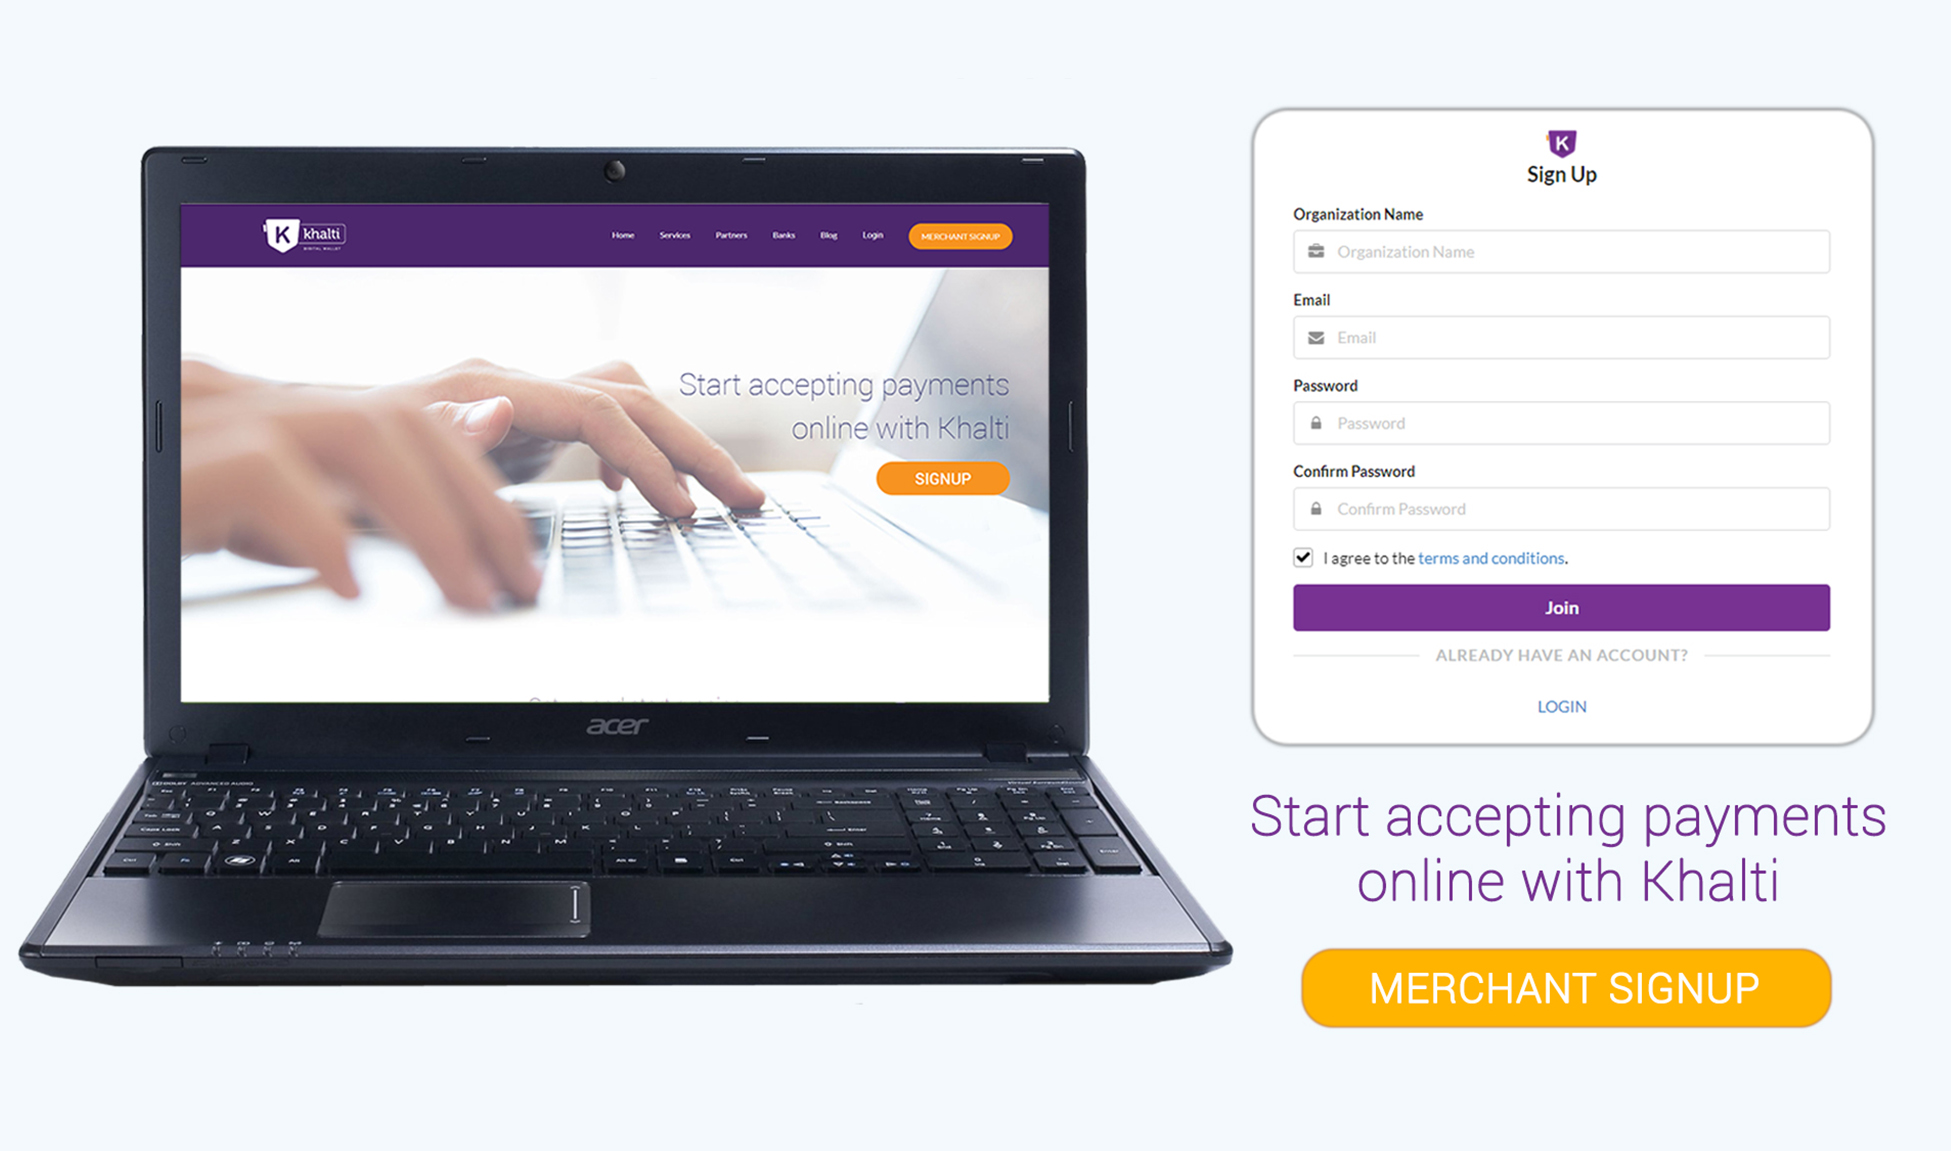 How to sign up and integrate Khalti Online Payment Gateway?